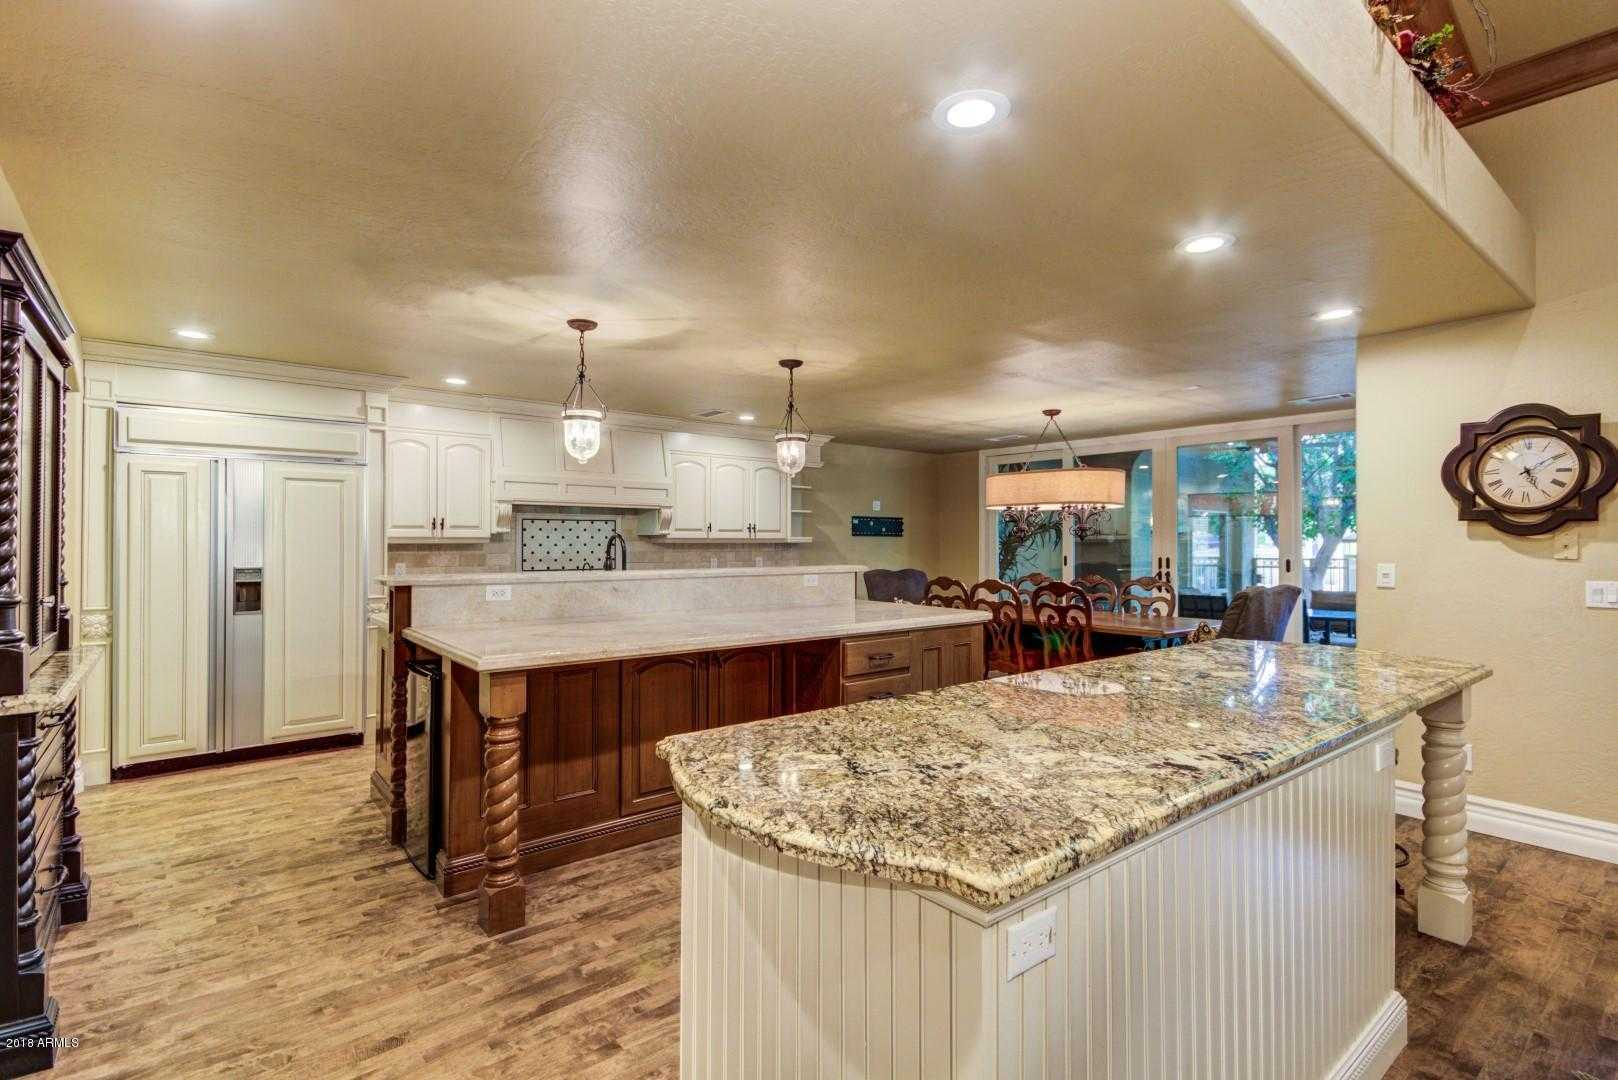 kitchen az cabinets how much to reface chandler contemporary urban home ideas mls 5862414 5750 w linda lane 85226 more